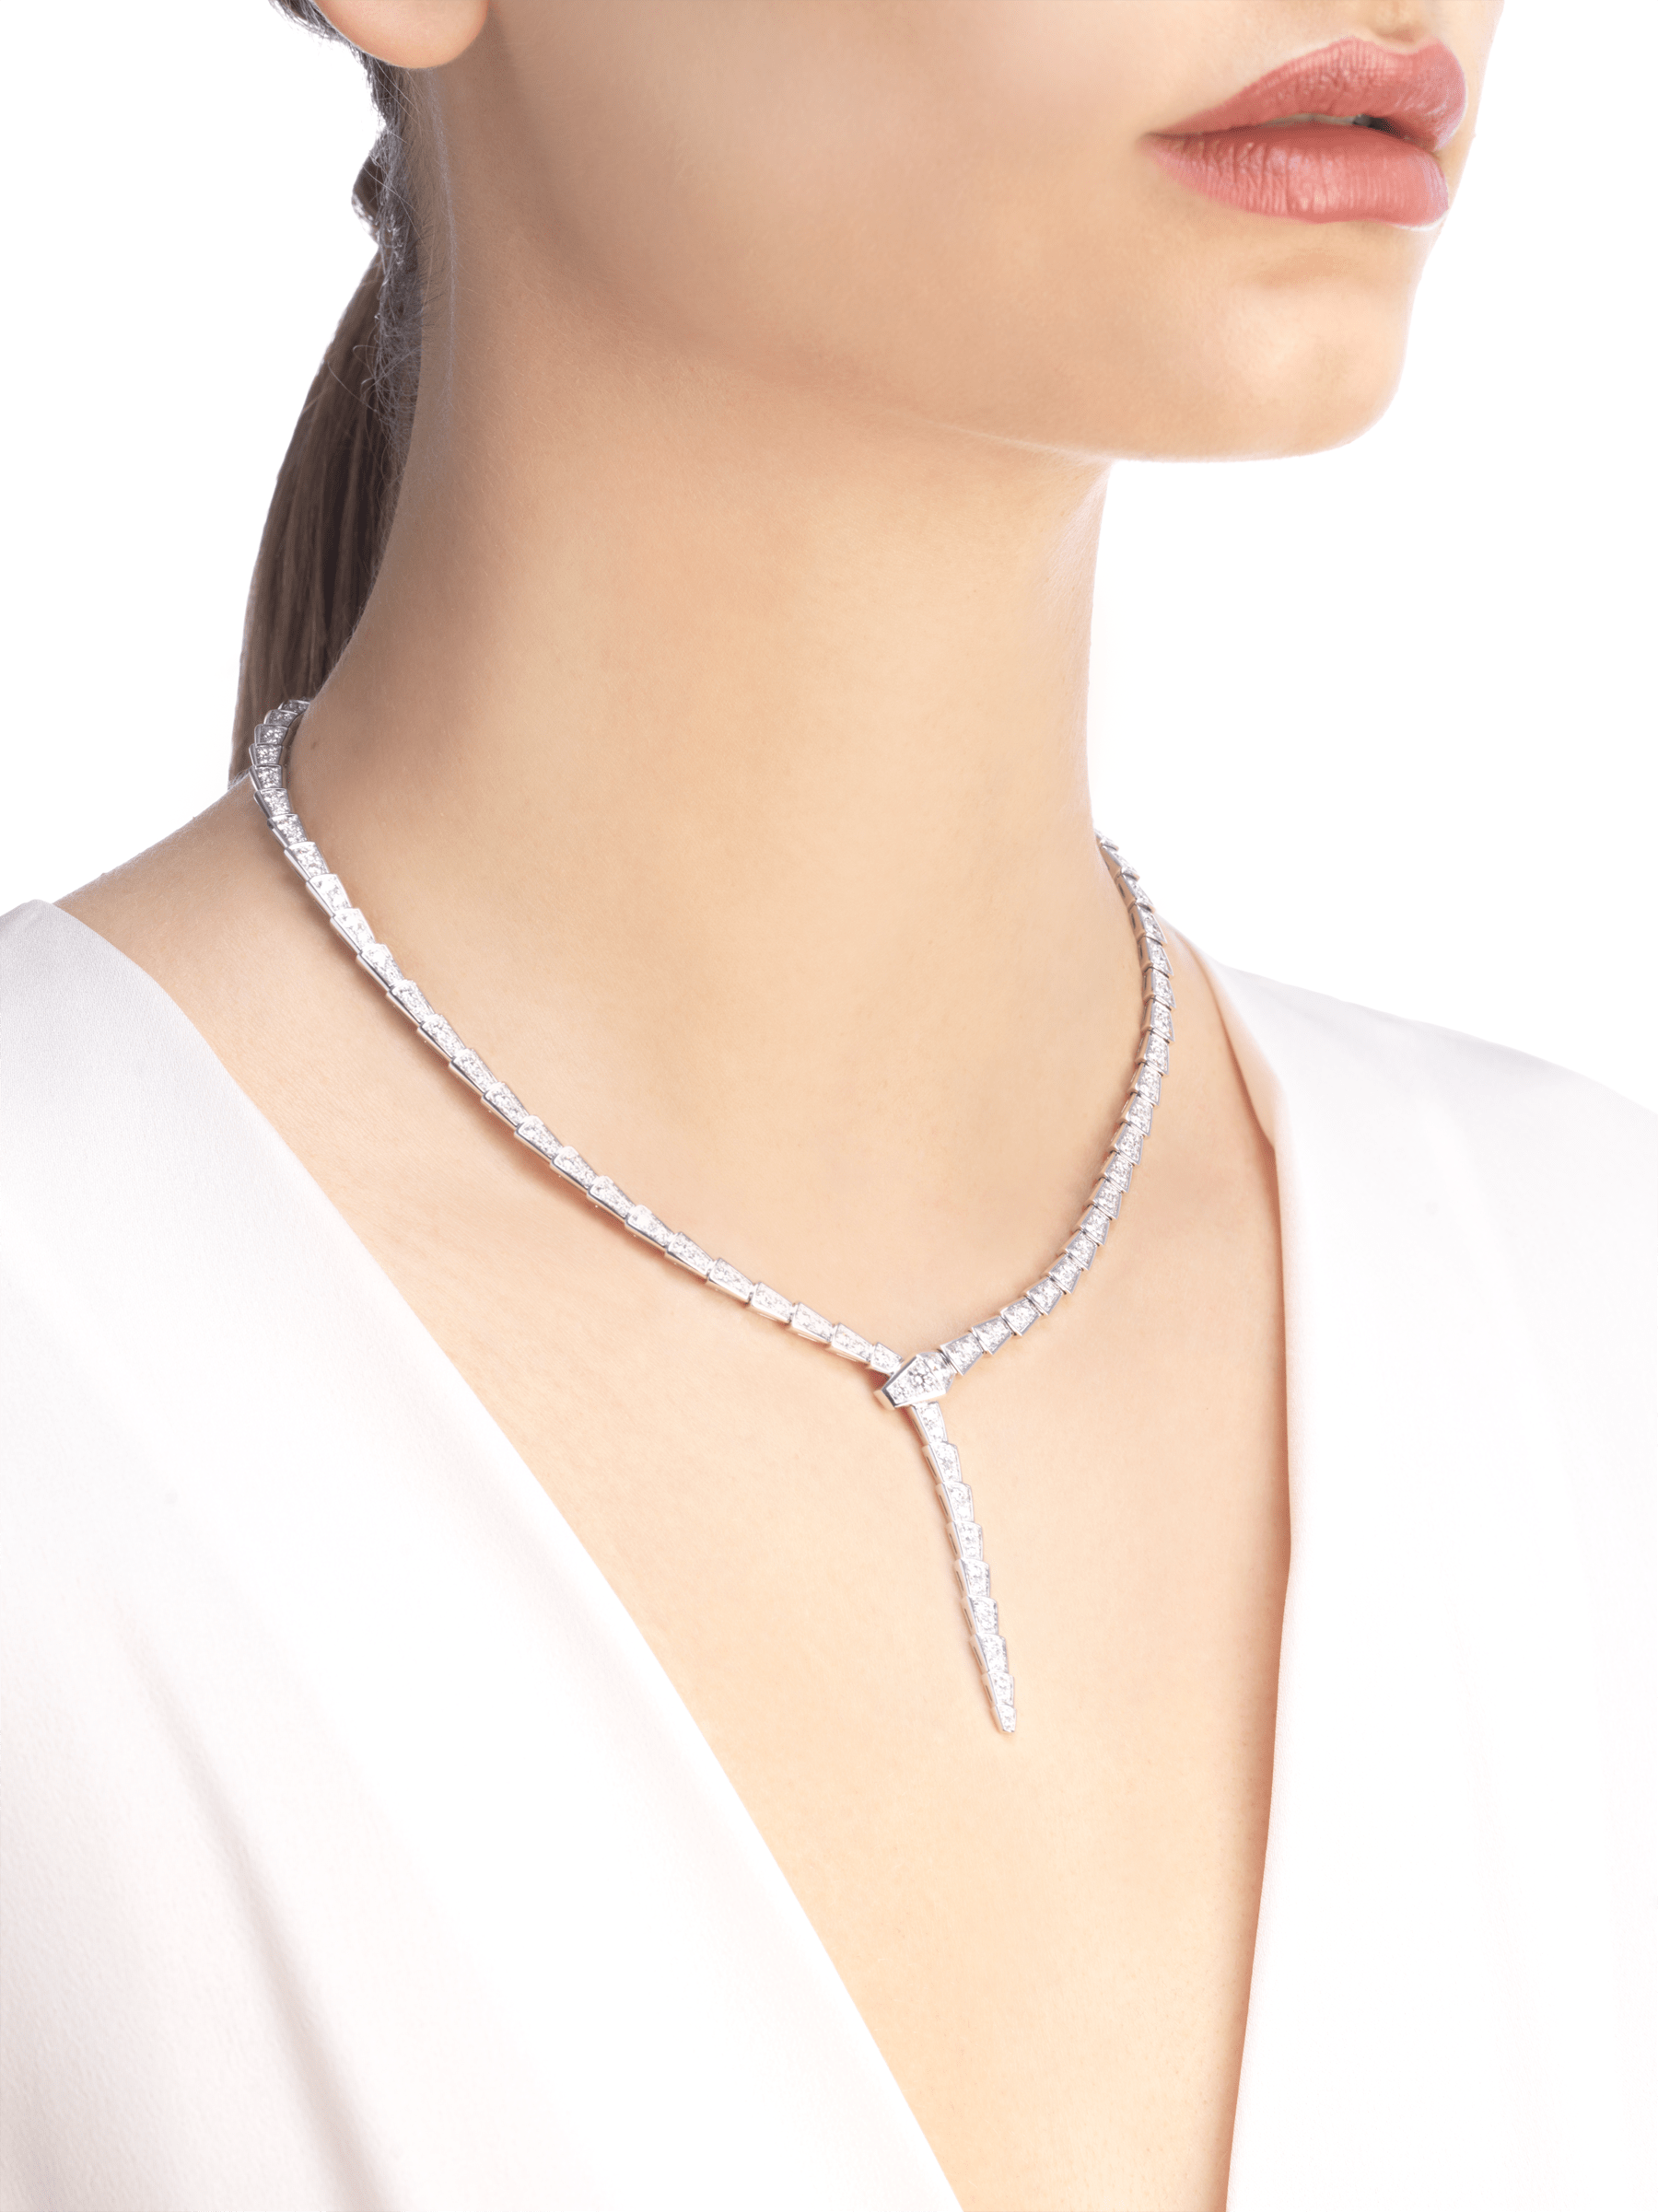 Serpenti Viper slim necklace in 18 kt white gold, set with full pavé diamonds. 351090 image 3